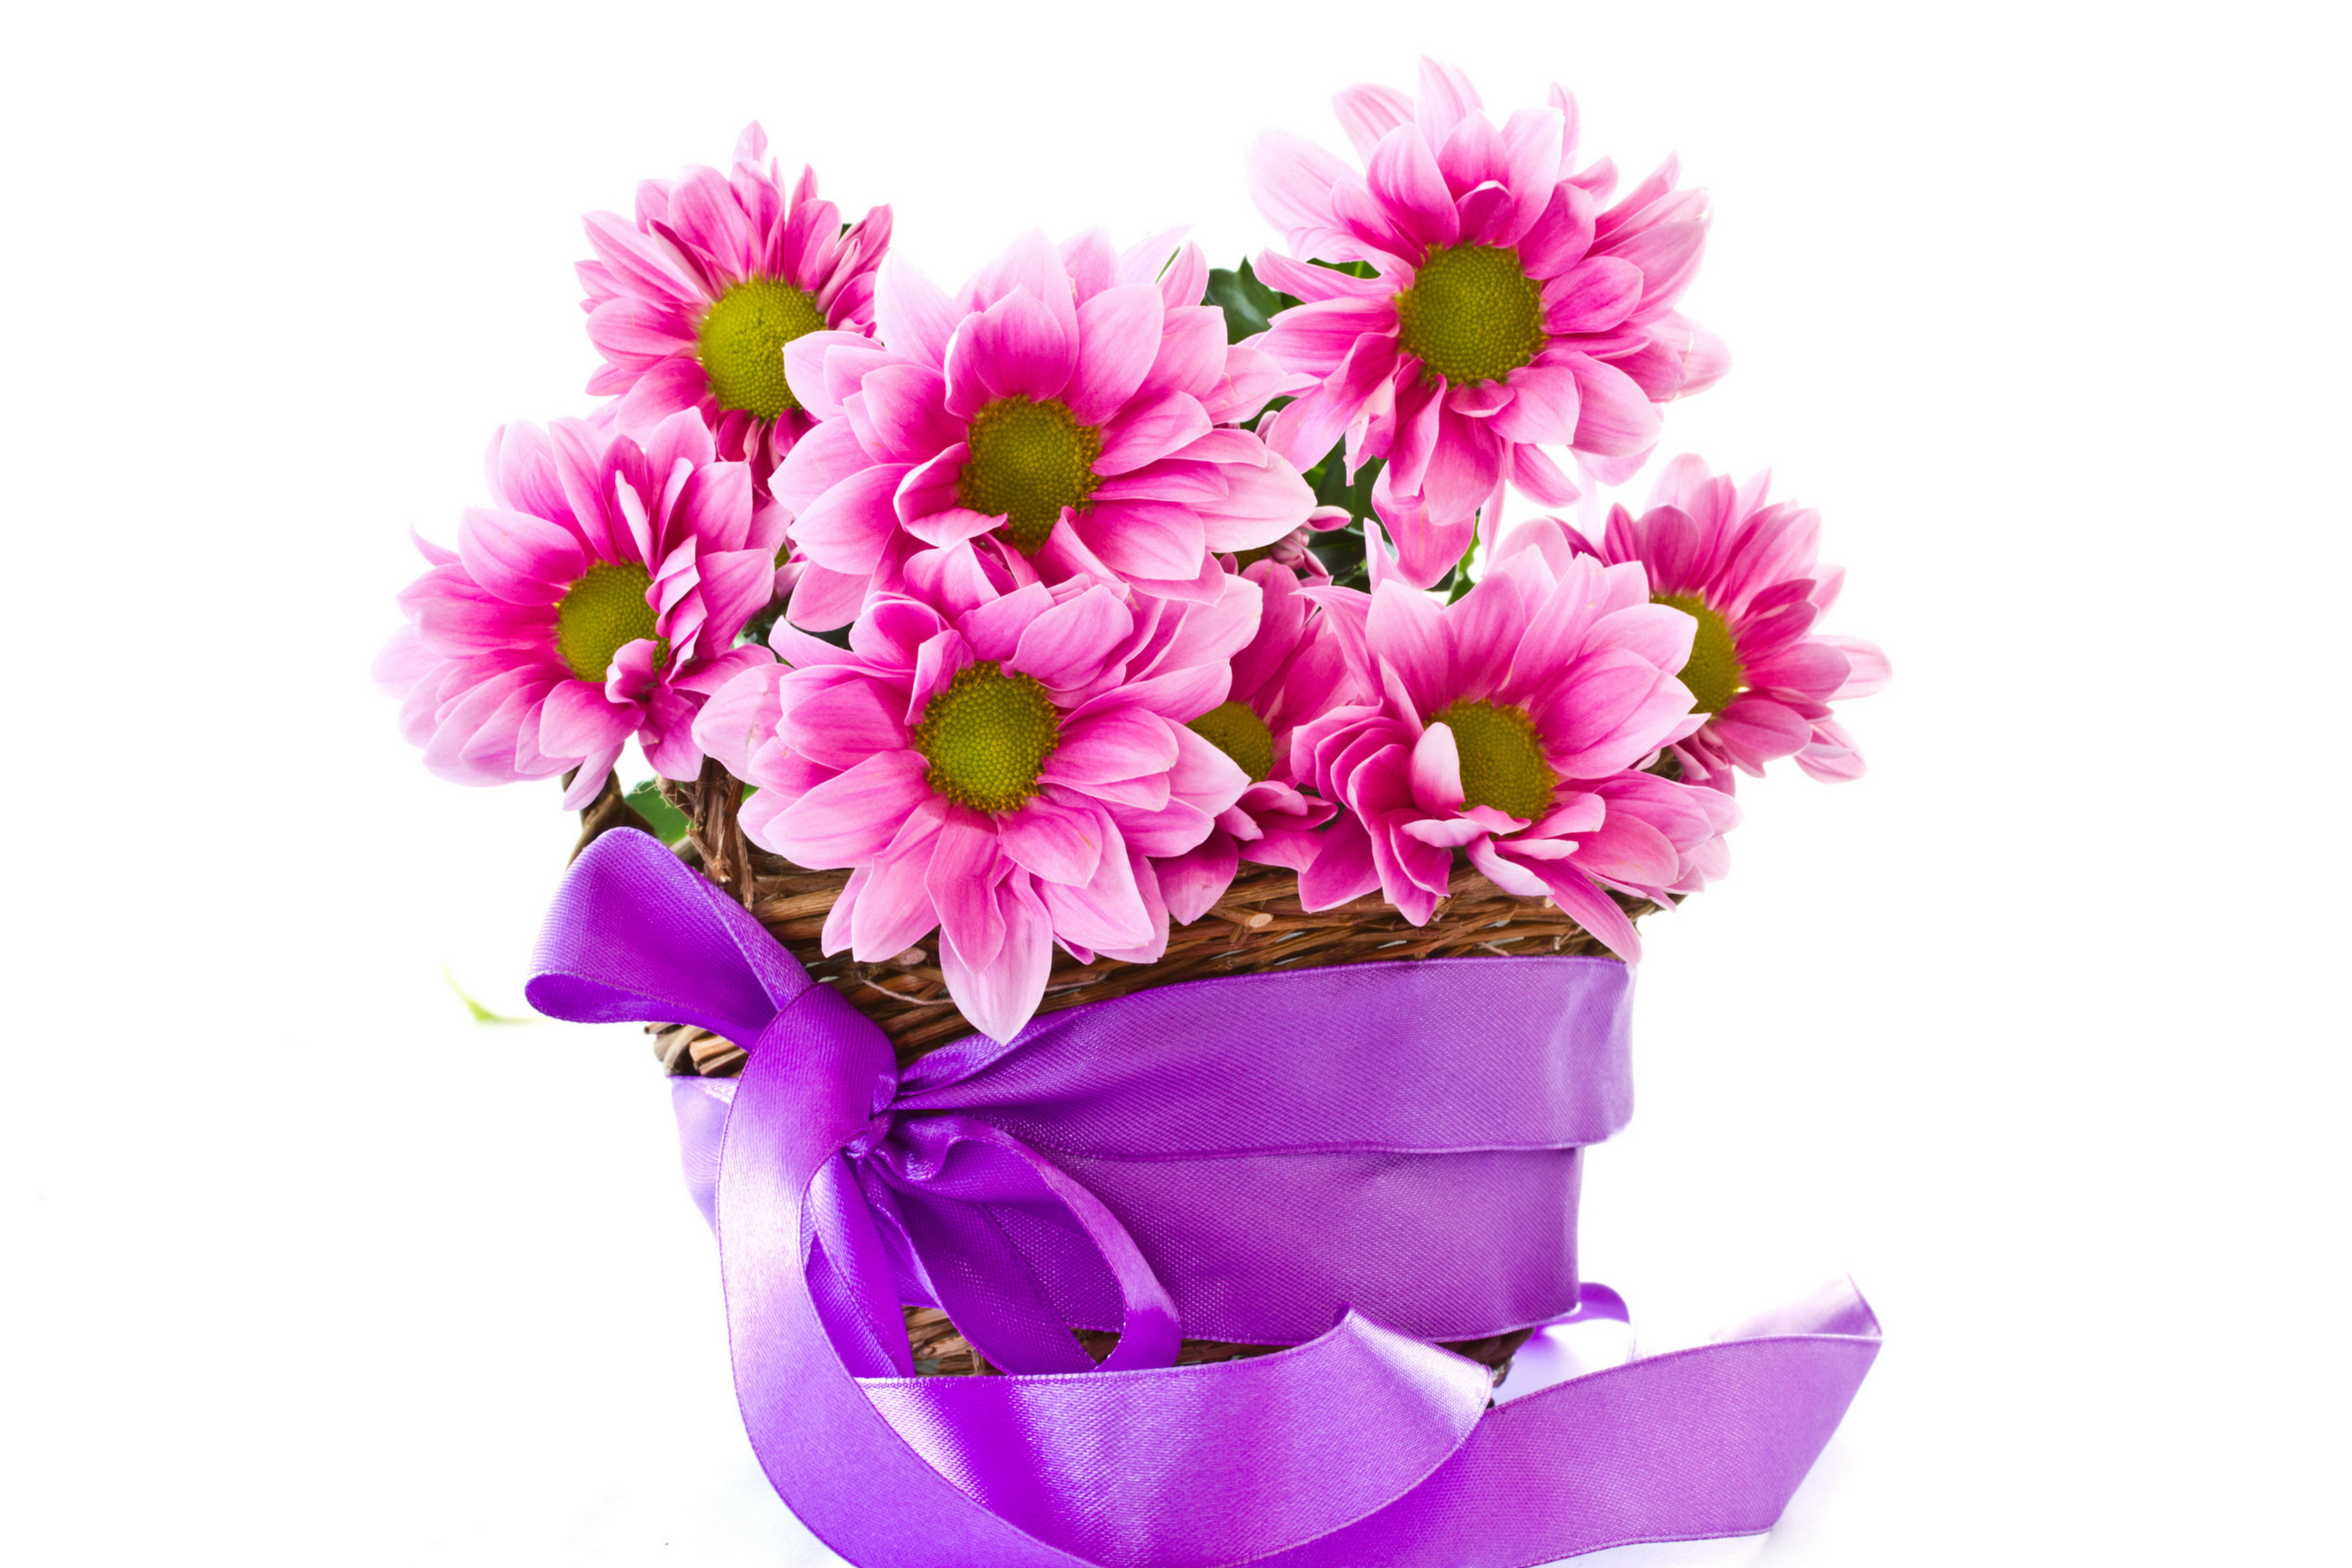 Home decoration beautiful lovely flowers flower petals ...